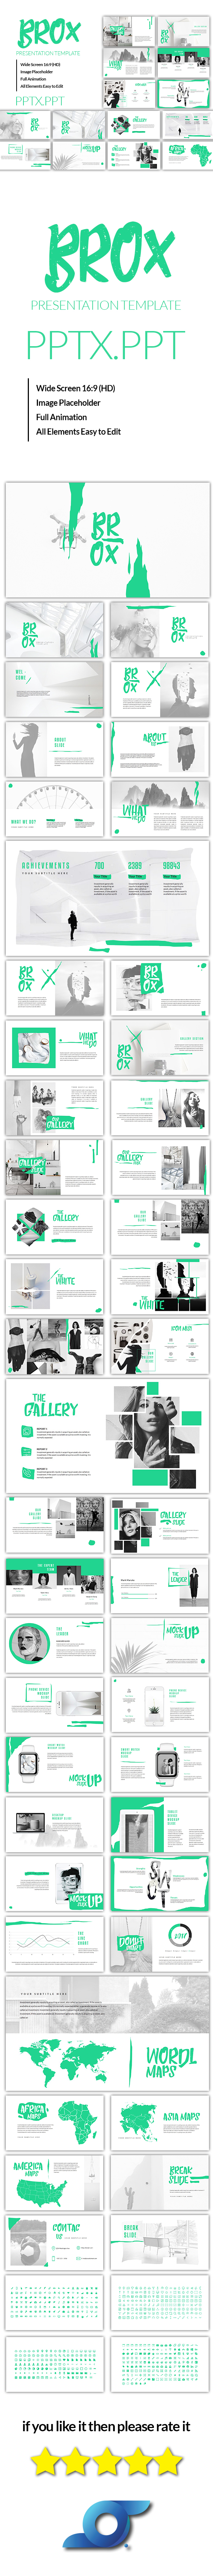 Brox - Creative Powerpoint Template - Creative PowerPoint Templates